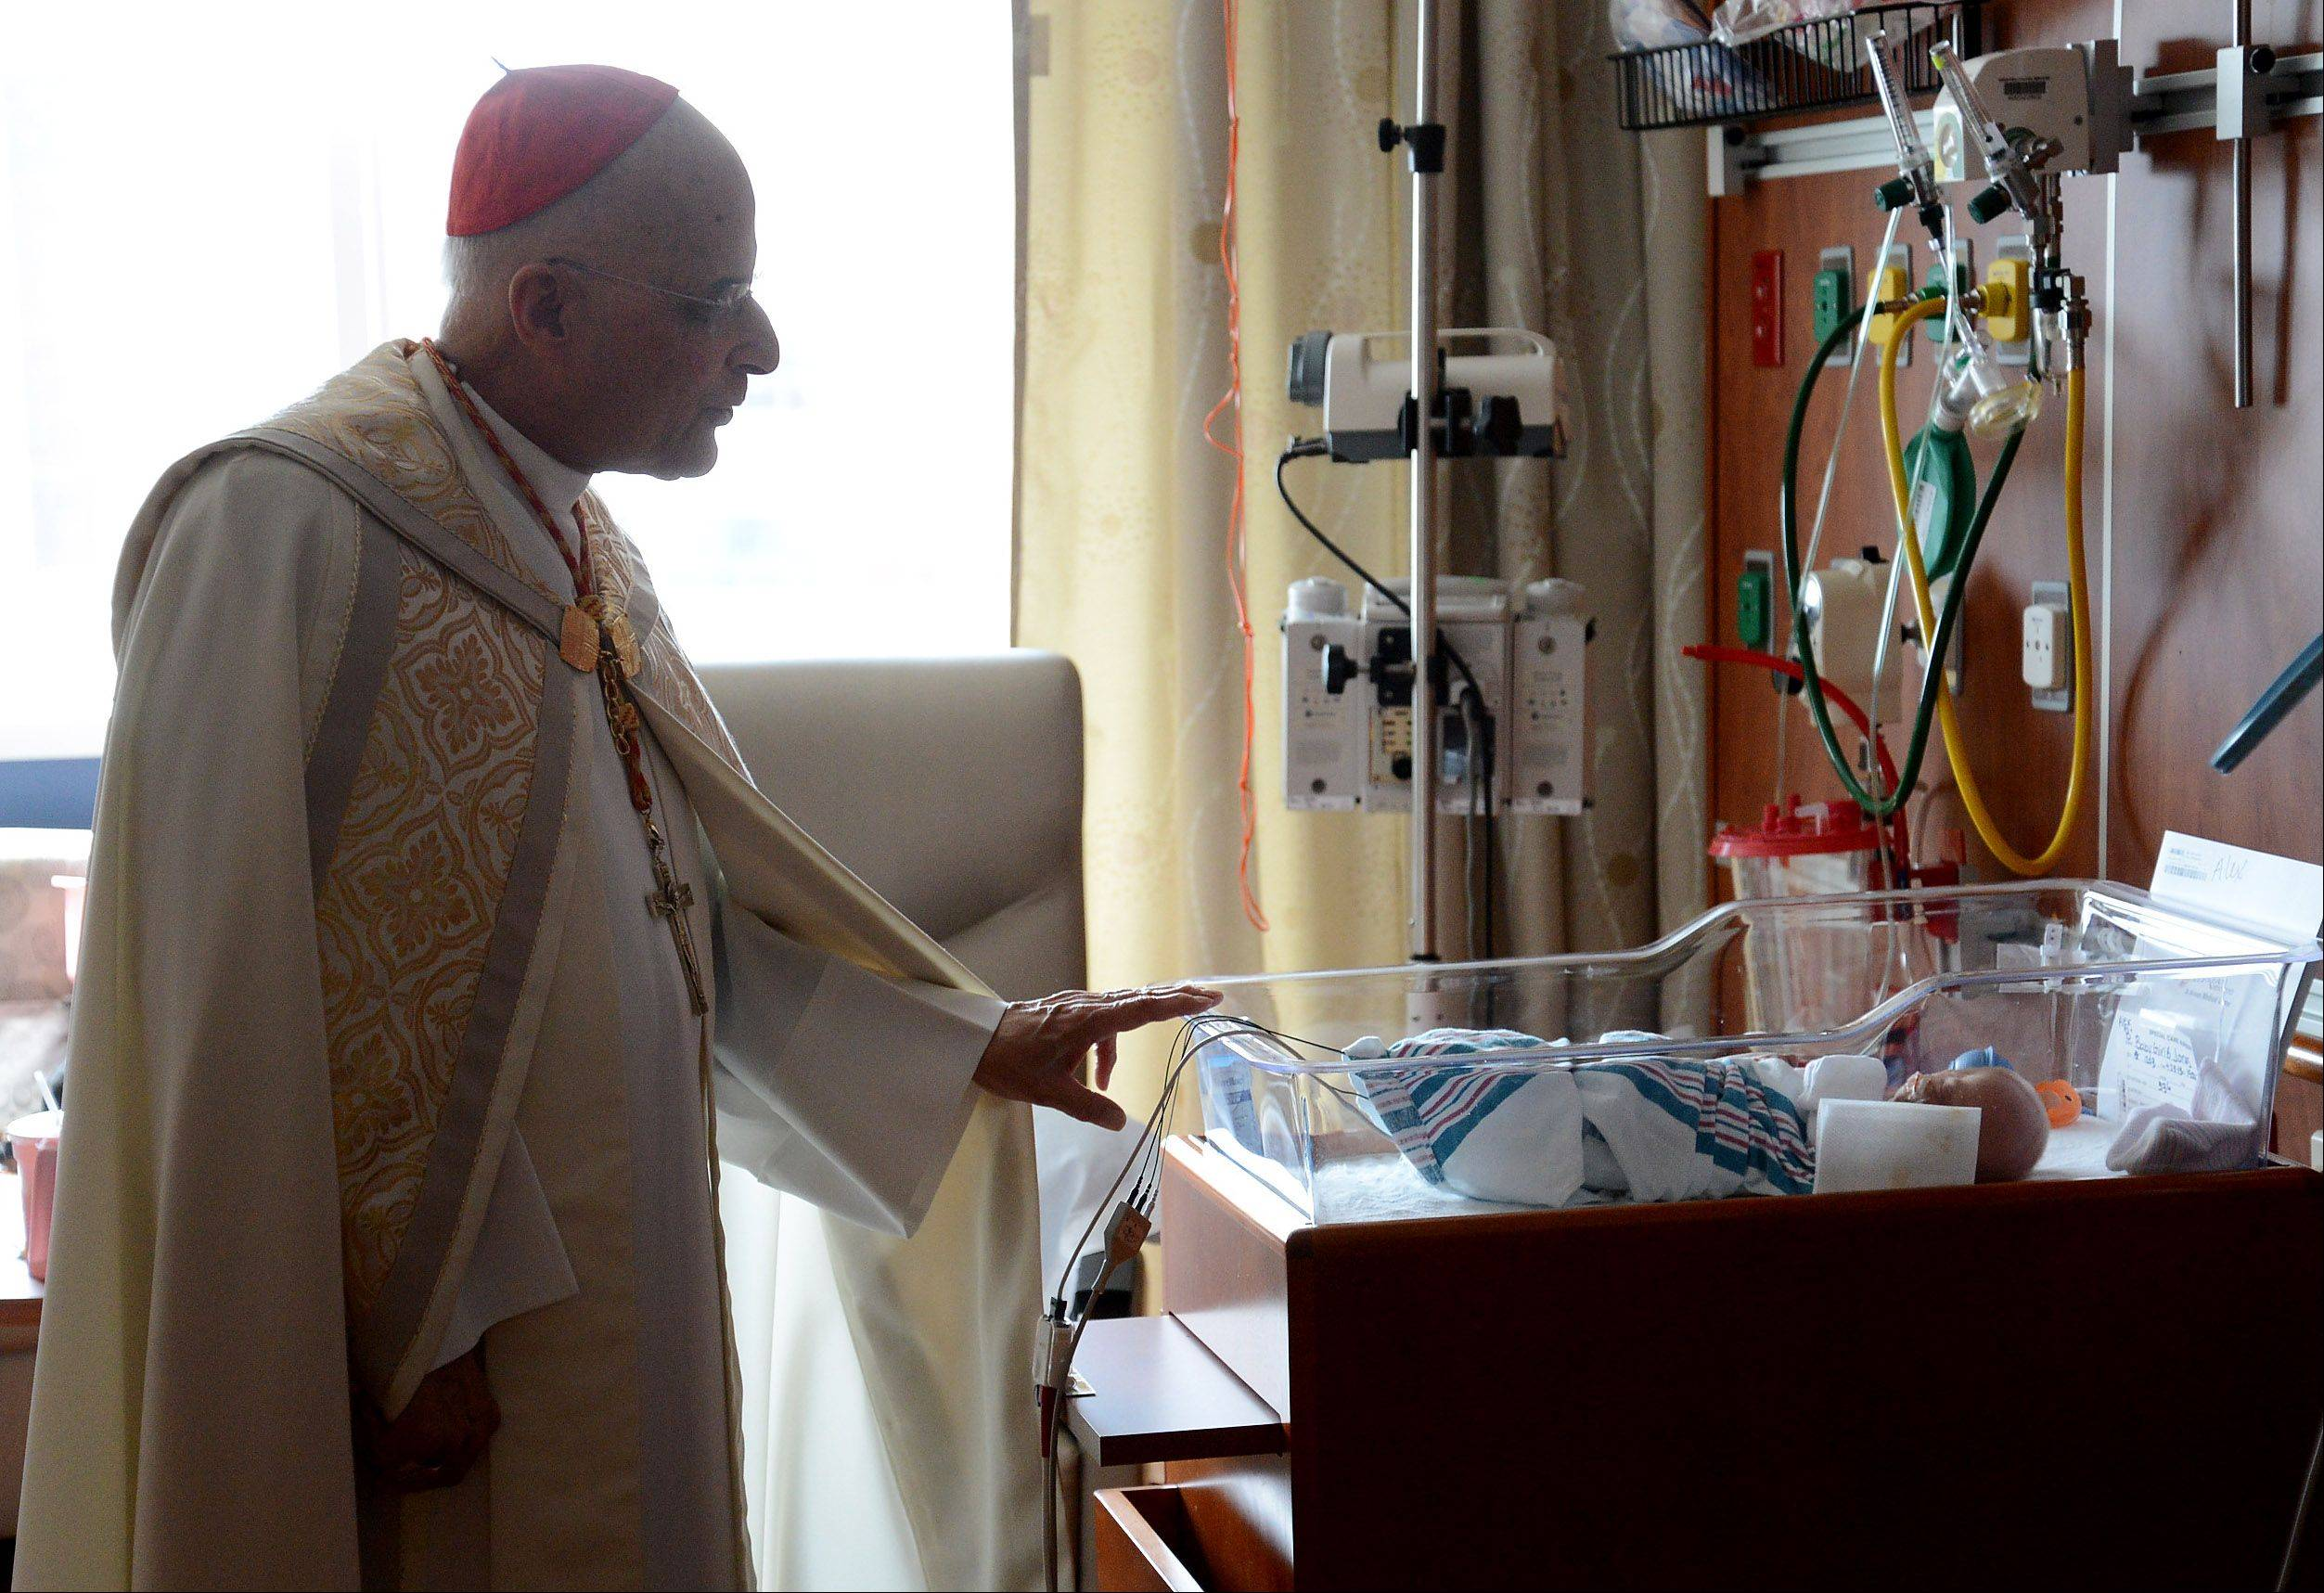 Cardinal George blesses Alexandra Jones, born prematurely, at the new Alexian Brothers Women and Children's Hospital in Hoffman Estates yesterday.